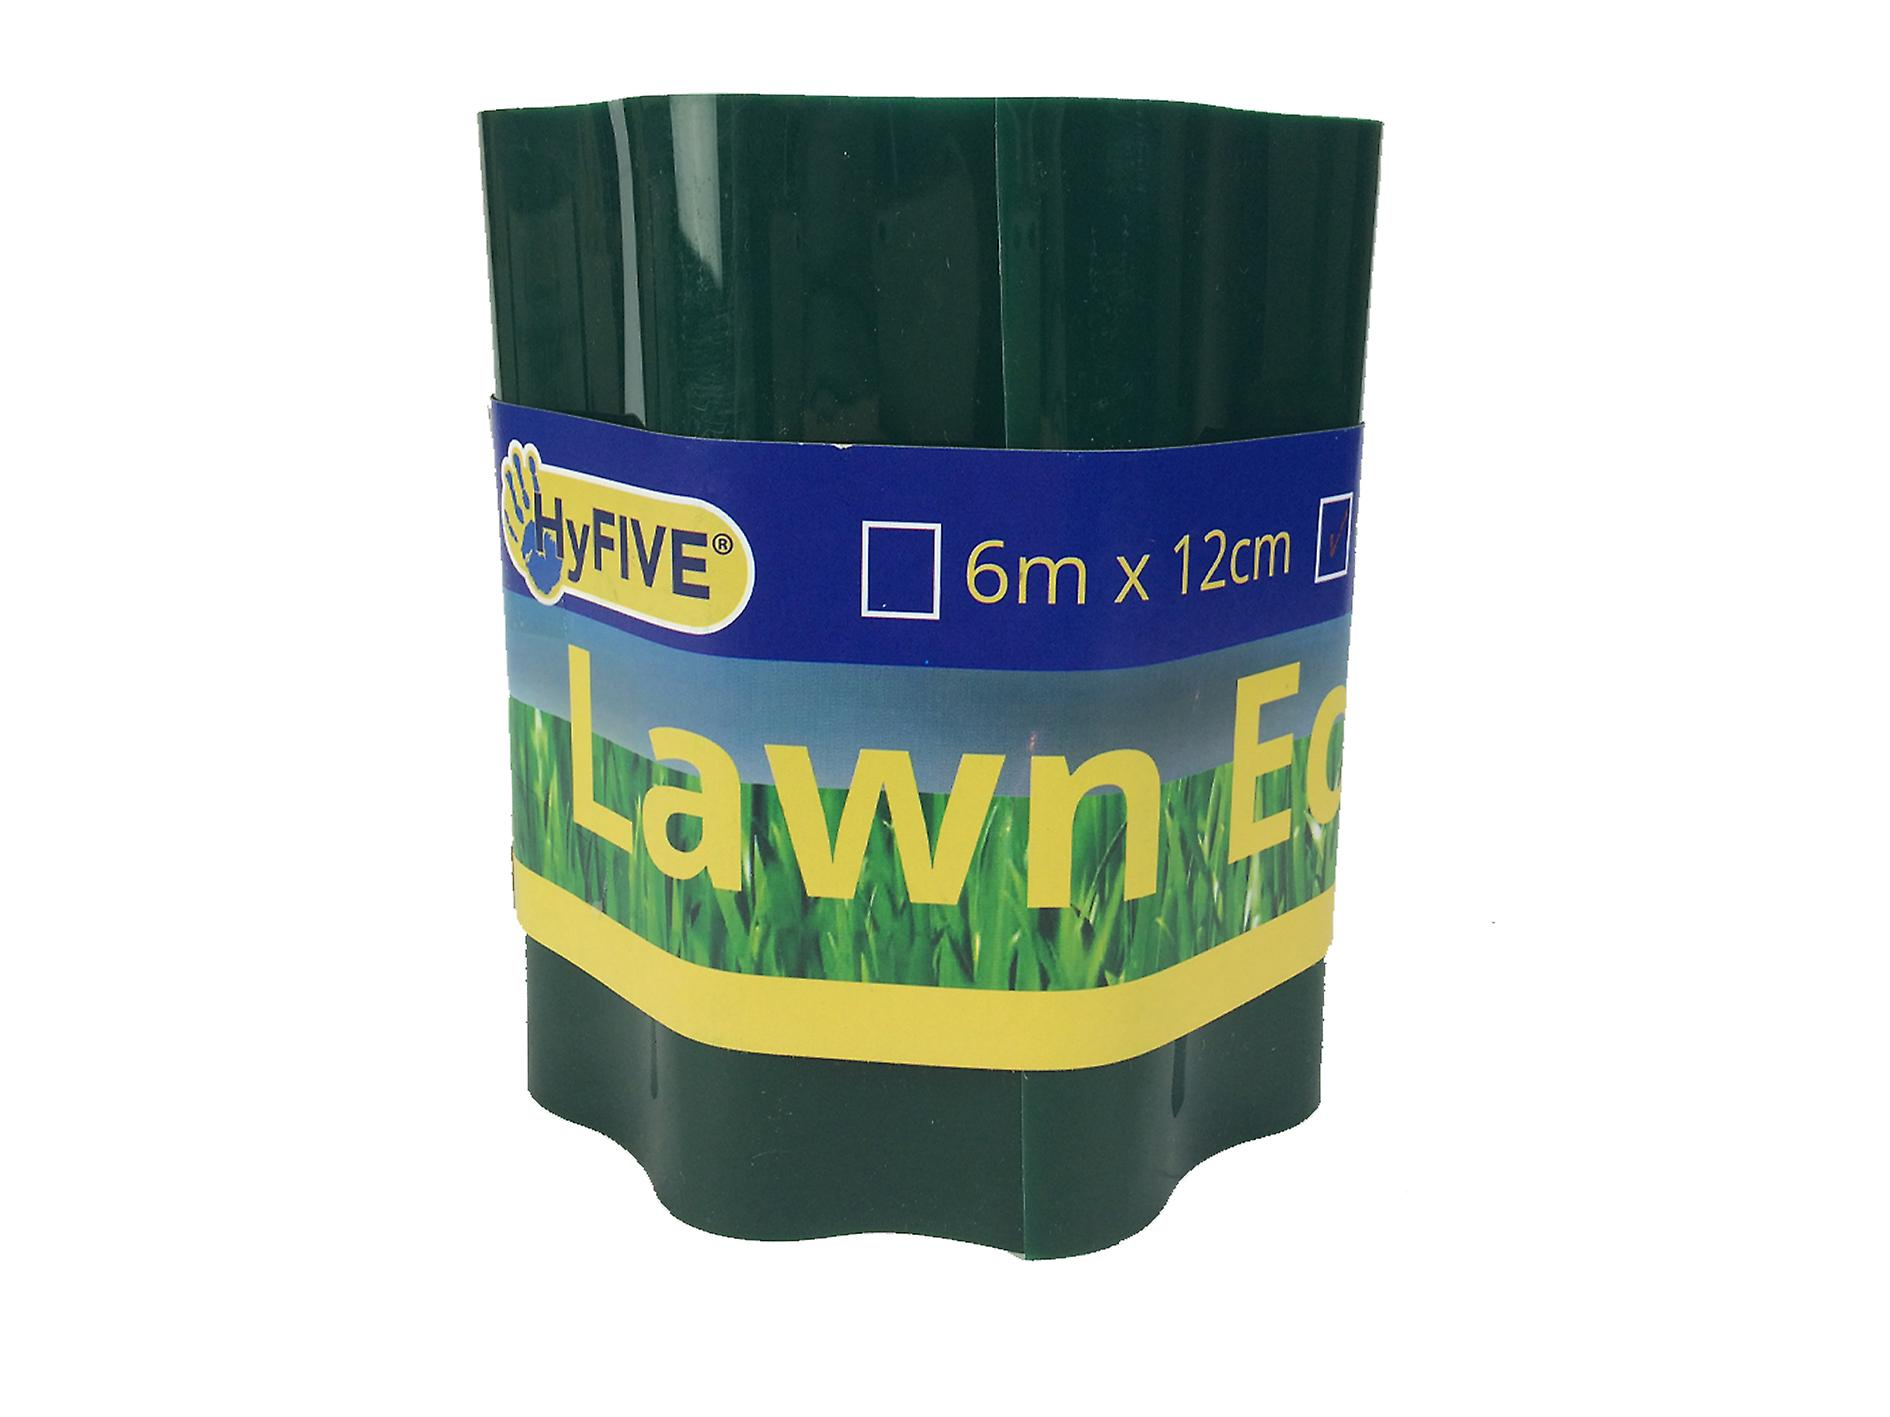 Hyfive Lawn and Beet Patch Border for Garden Green 15cm x 6m